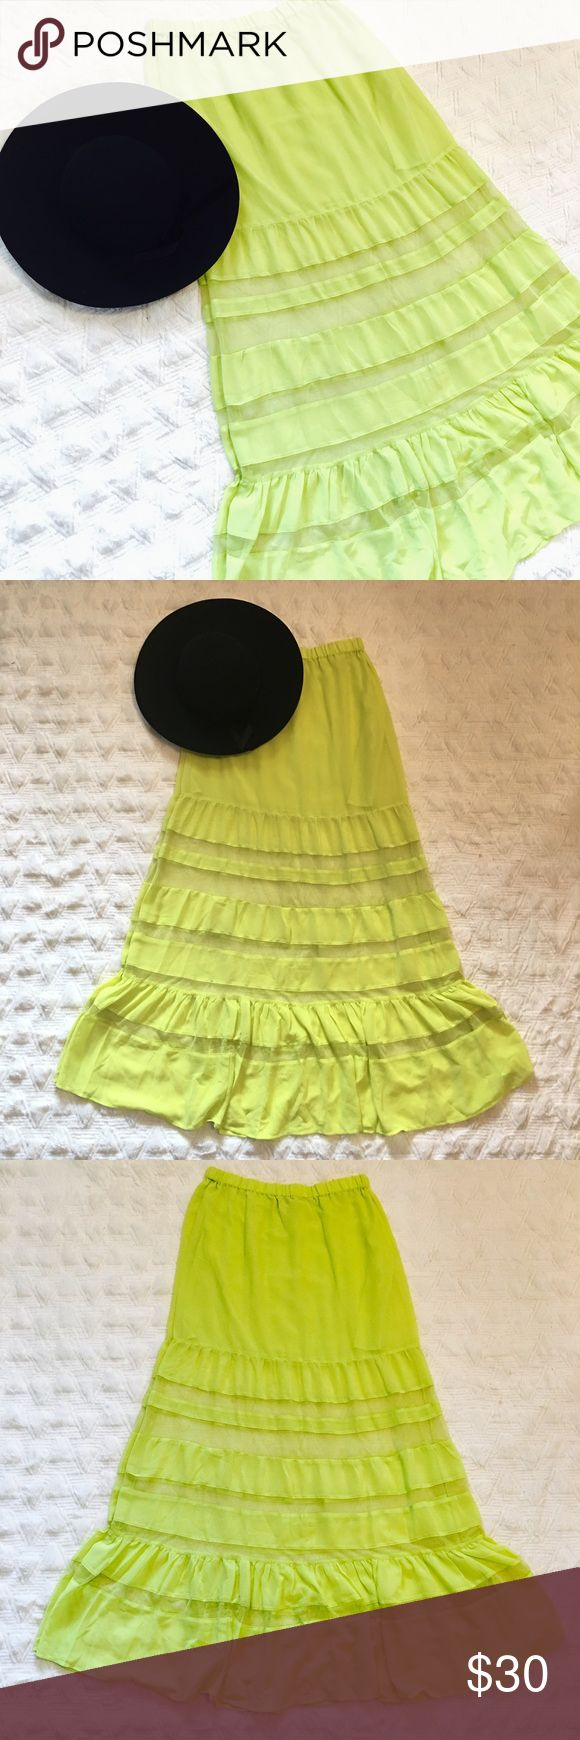 Asos Sheer Neon Yellow Maxi Skirt Asos Sheer Neon Yellow Maxi Skirt. Size 8. Sheer horizontal bands. New without tags. ASOS Skirts Maxi